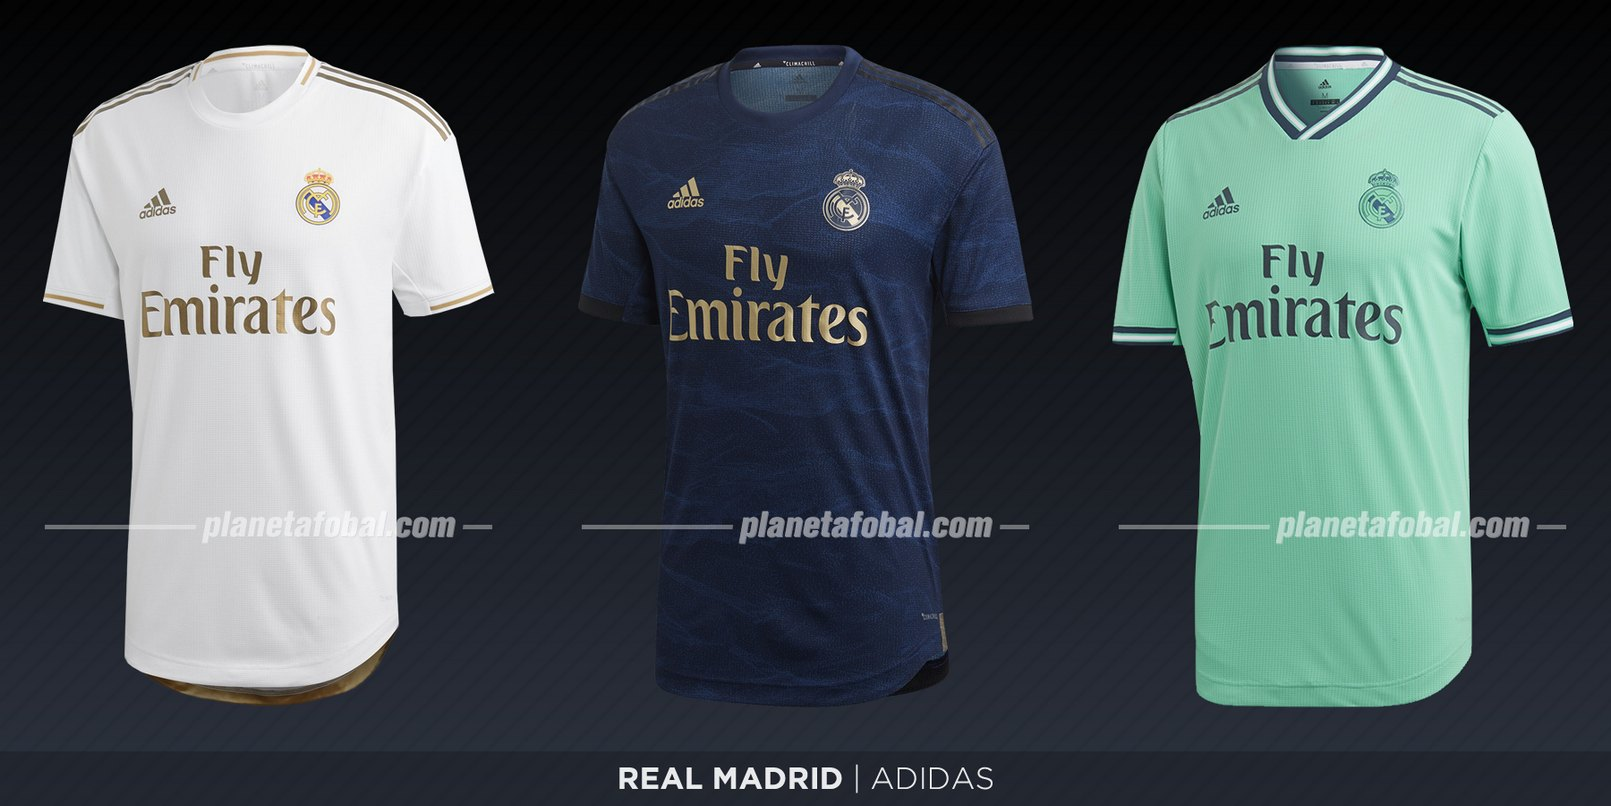 Real Madrid (Adidas) | Camisetas de LaLiga 2019-2020